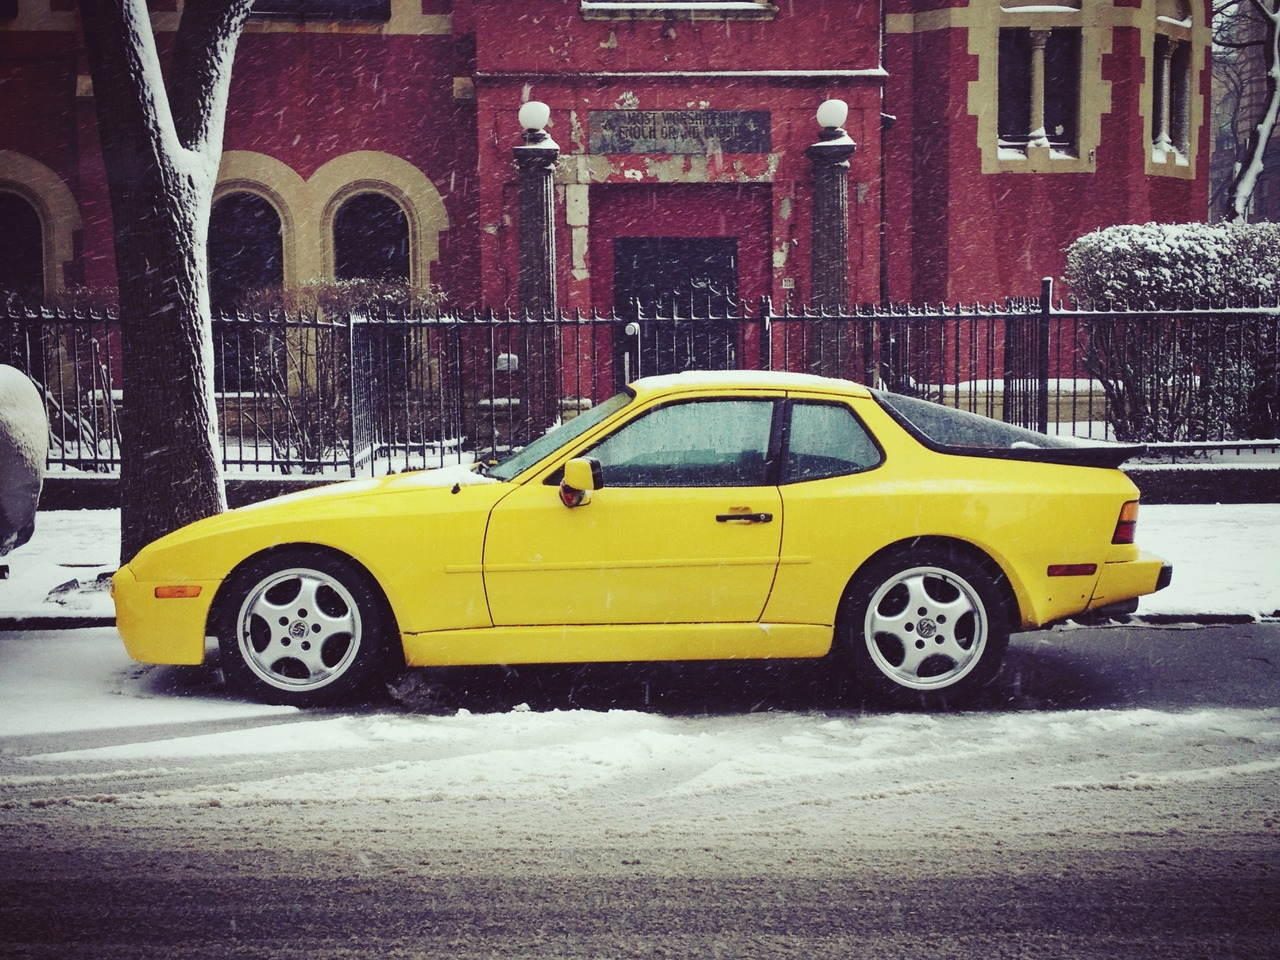 Canary Mercy #peppersearching #pepper #photos #porsche #canary #snow